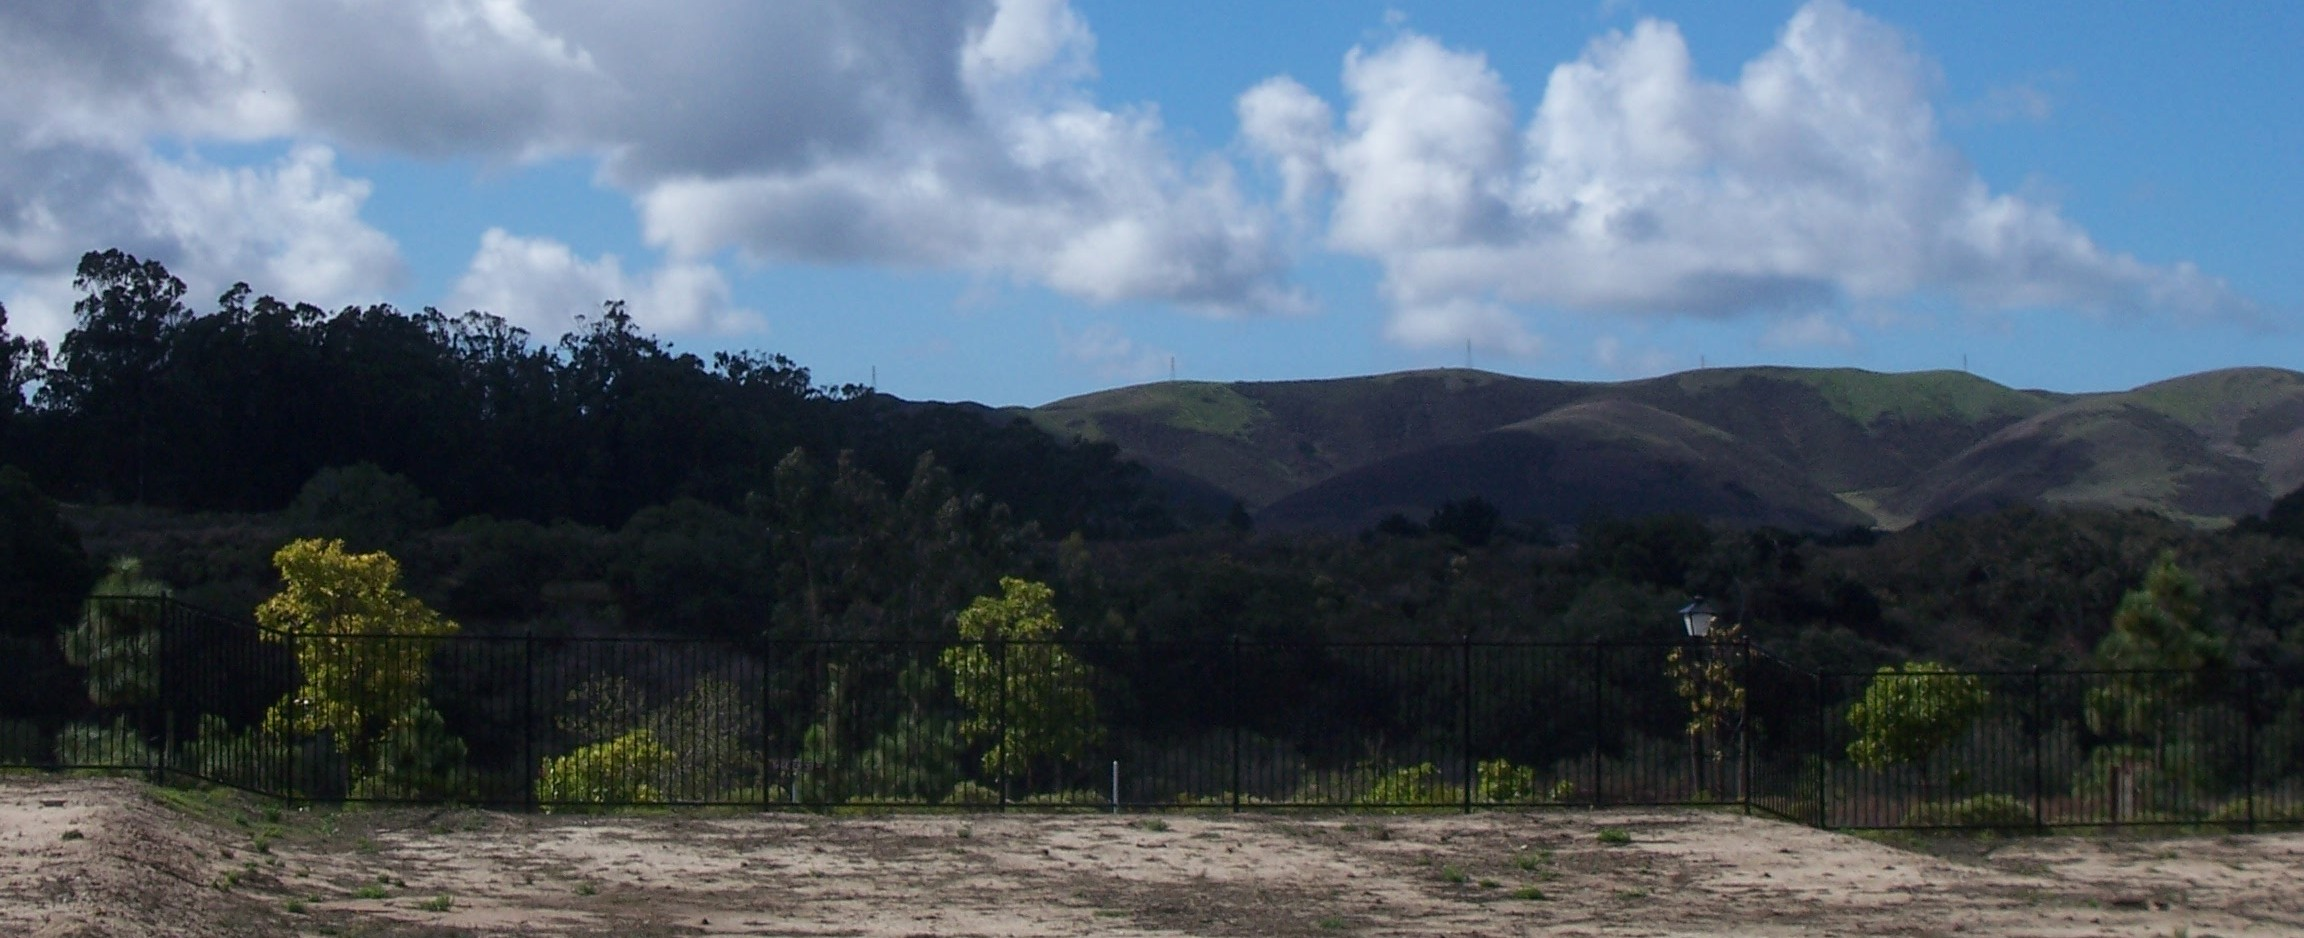 View Of Hills From Models At Rice Ranch In Orcutt